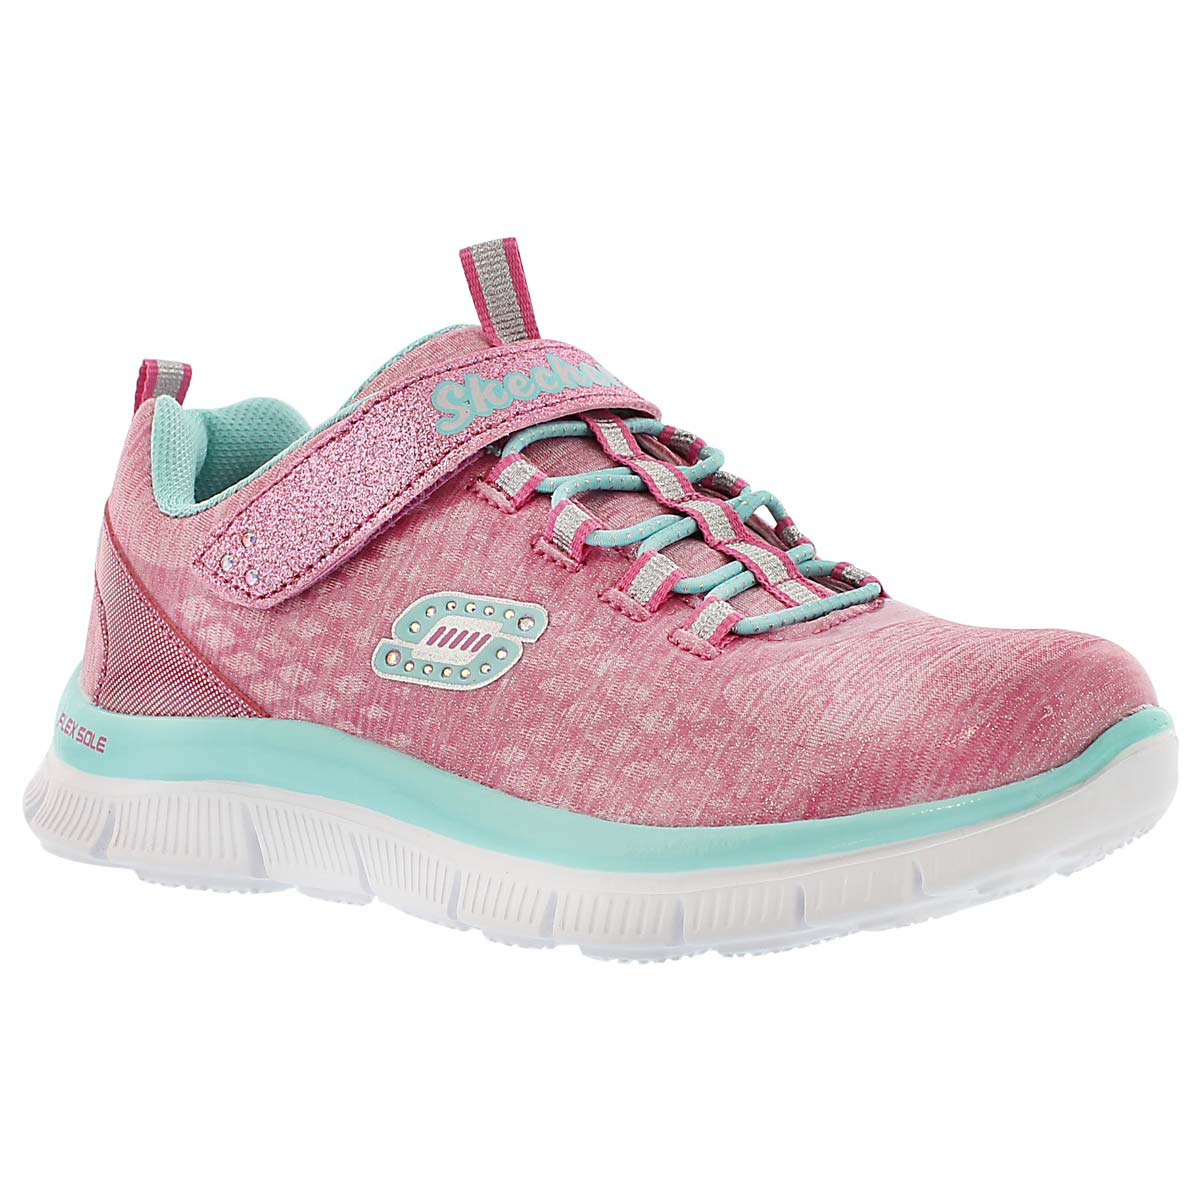 Girls' SPARKTACULAR pink/aqua running shoes